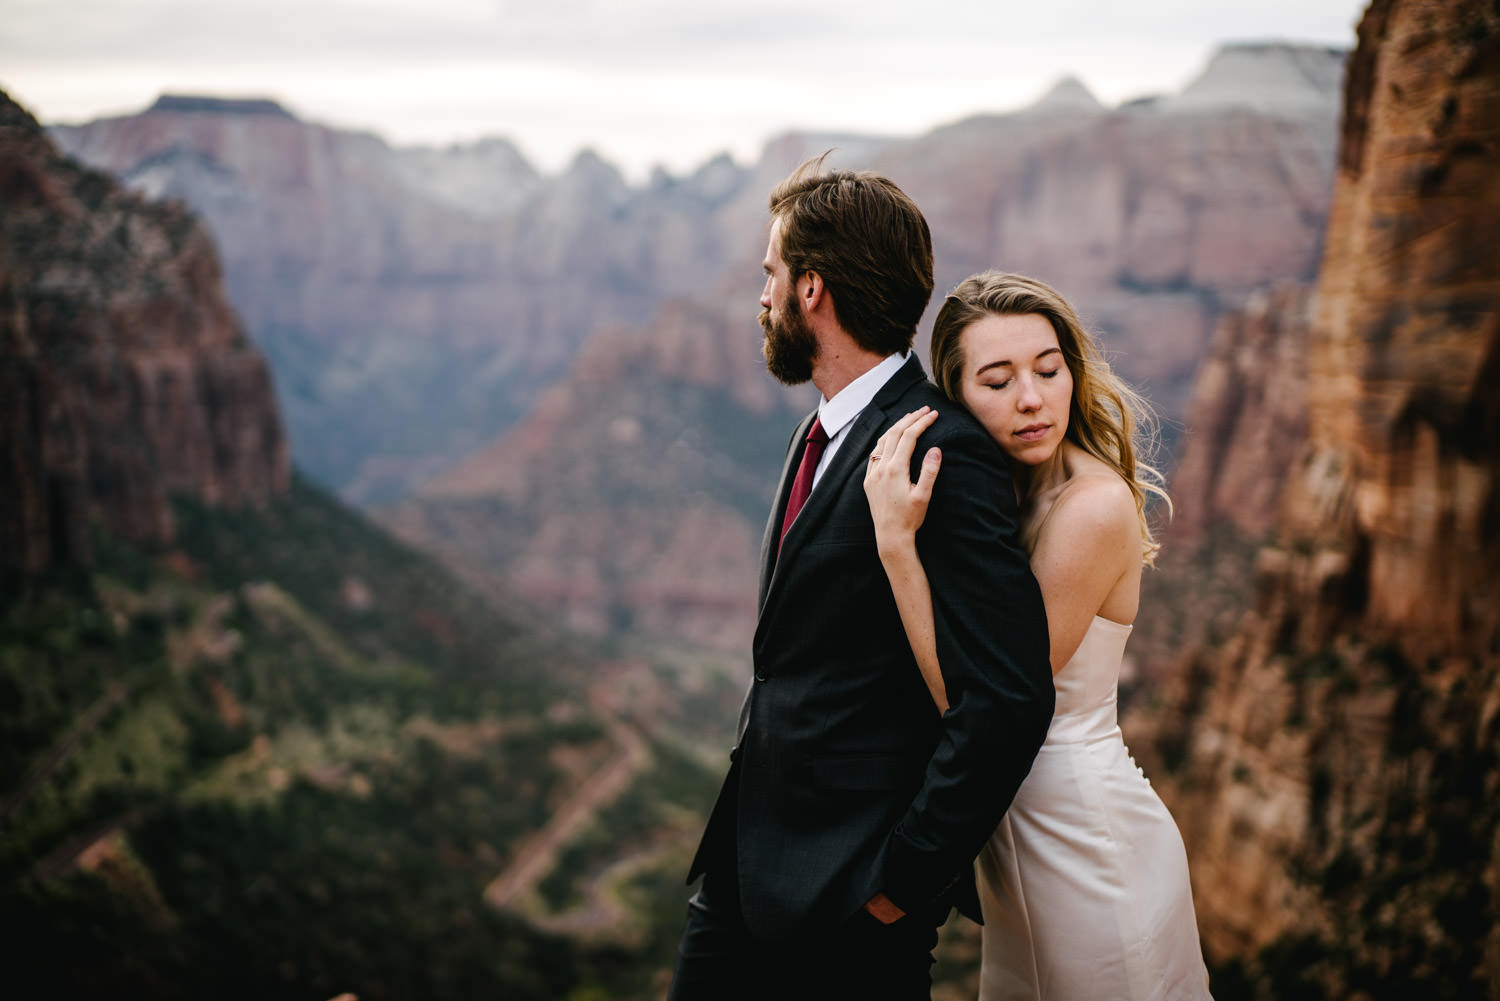 zionnationalpark_utah_destinationweddingphotographer_austendiamondphotography-3